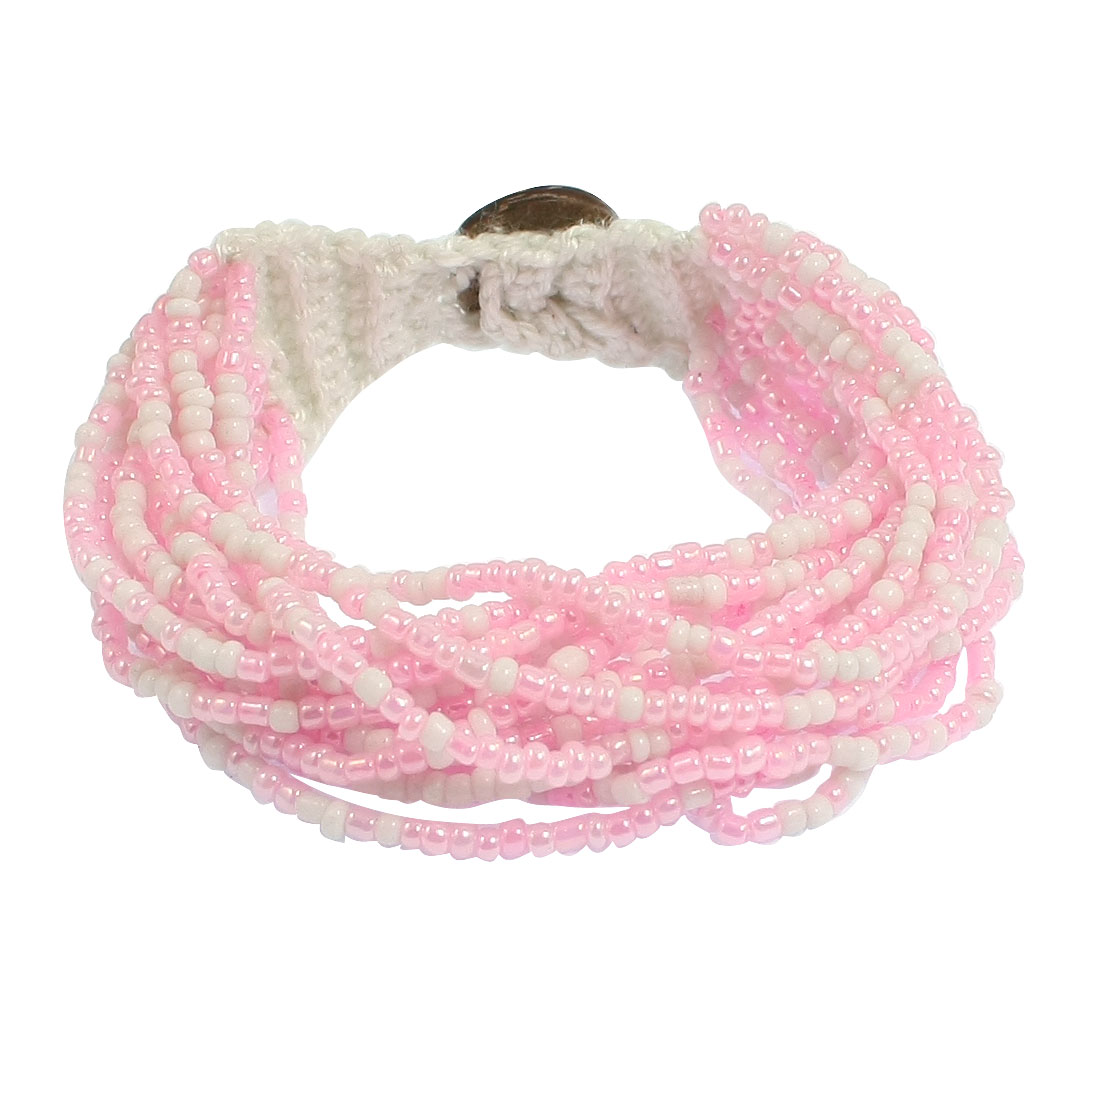 Braided Mulitlayer String White Pink Beaded Bracelet for Ladies